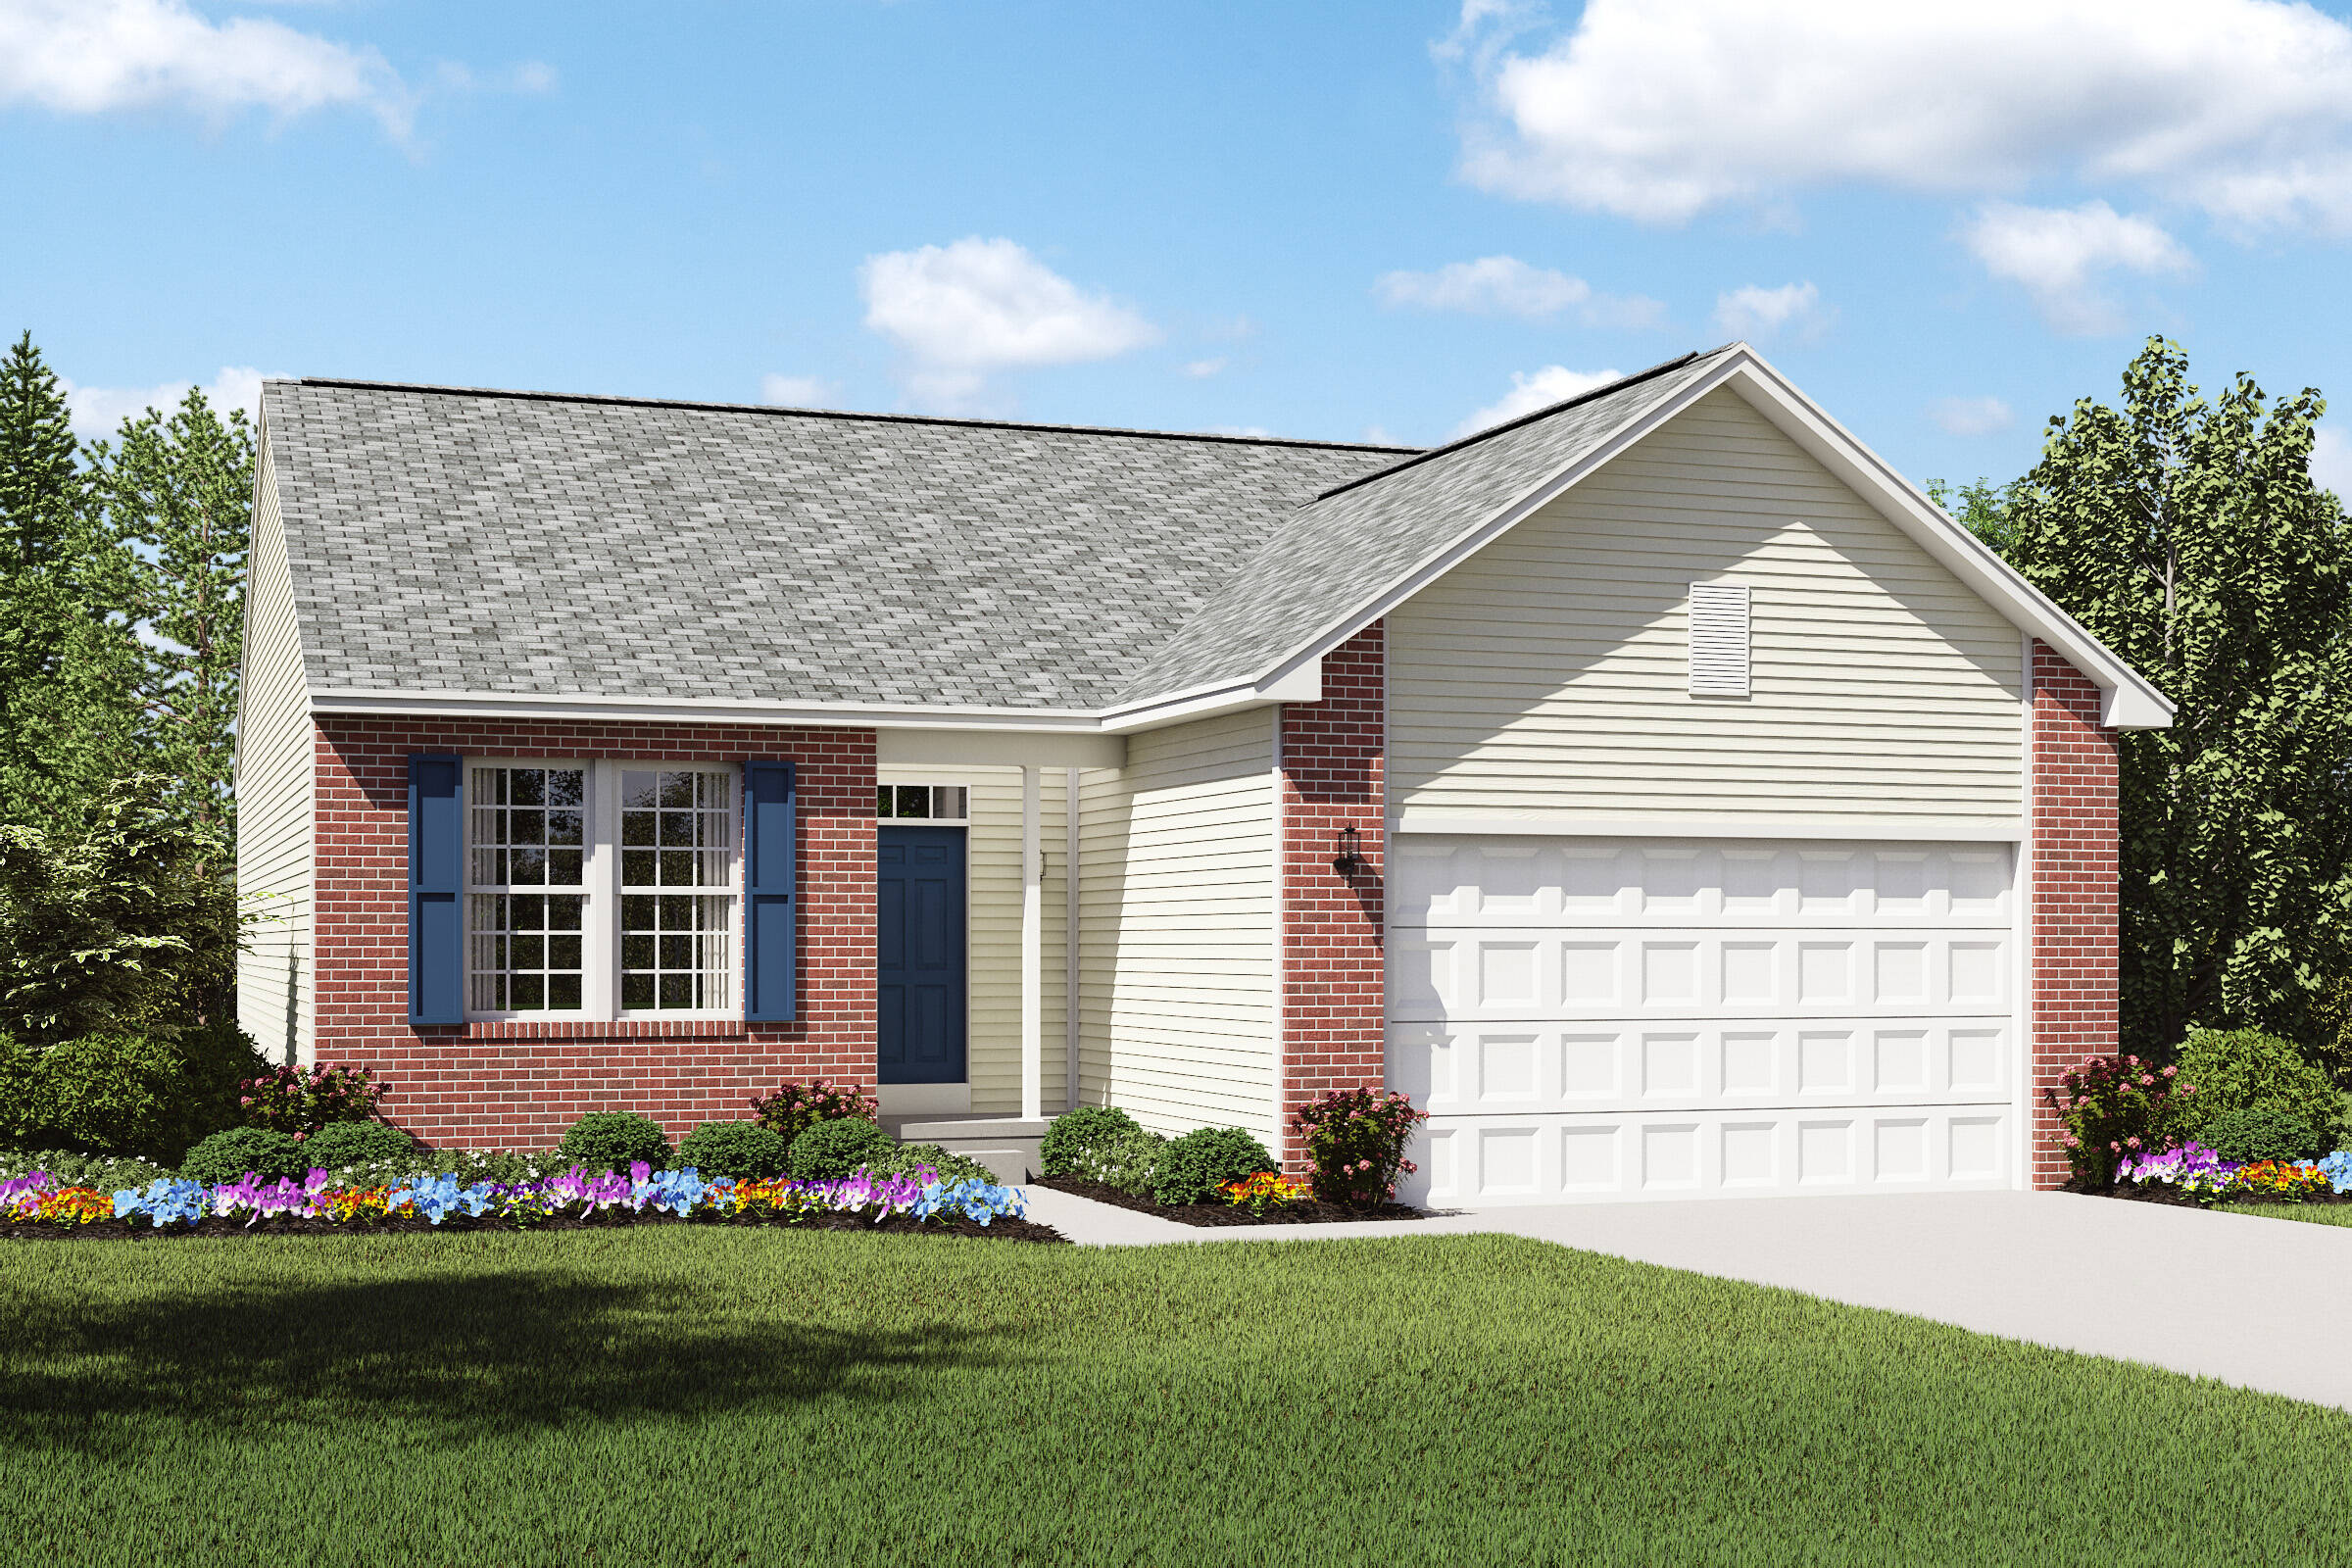 pinacle a brick exterior new home design northeast ohio